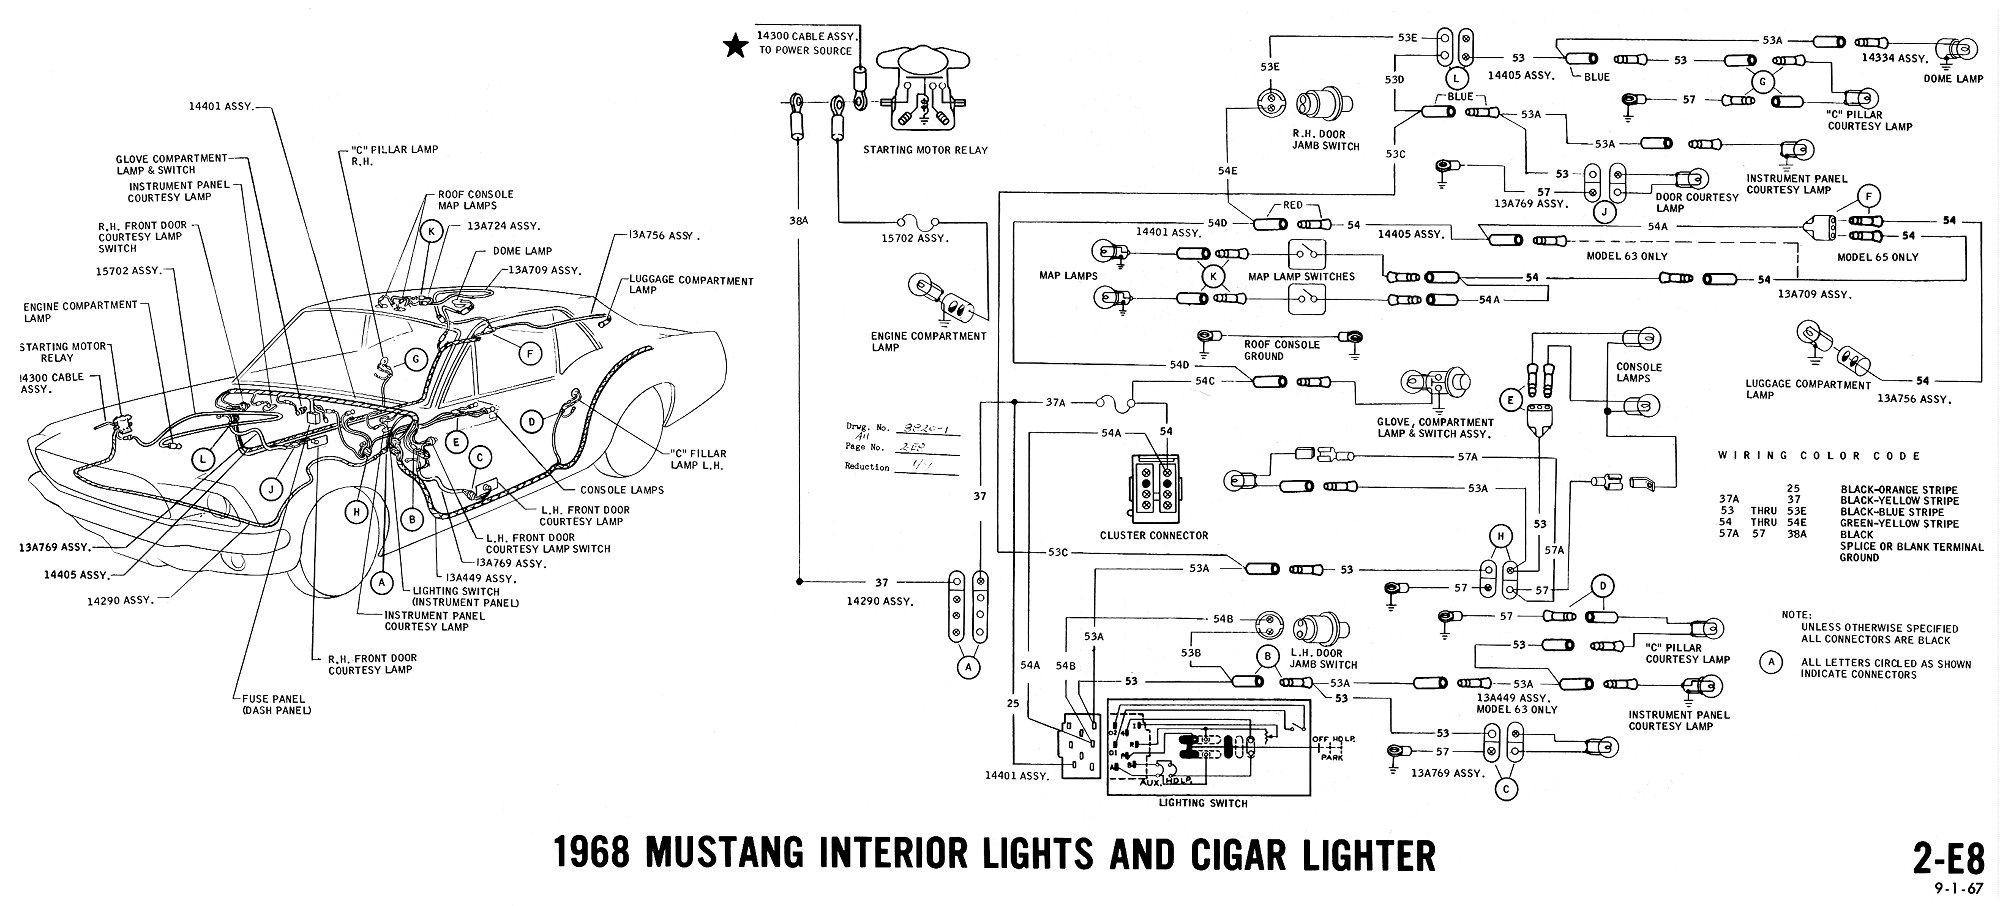 1968 mustang wiring diagrams evolving software rh peterfranza com mustang wiring diagram 1967 mustang wiring diagram 1966